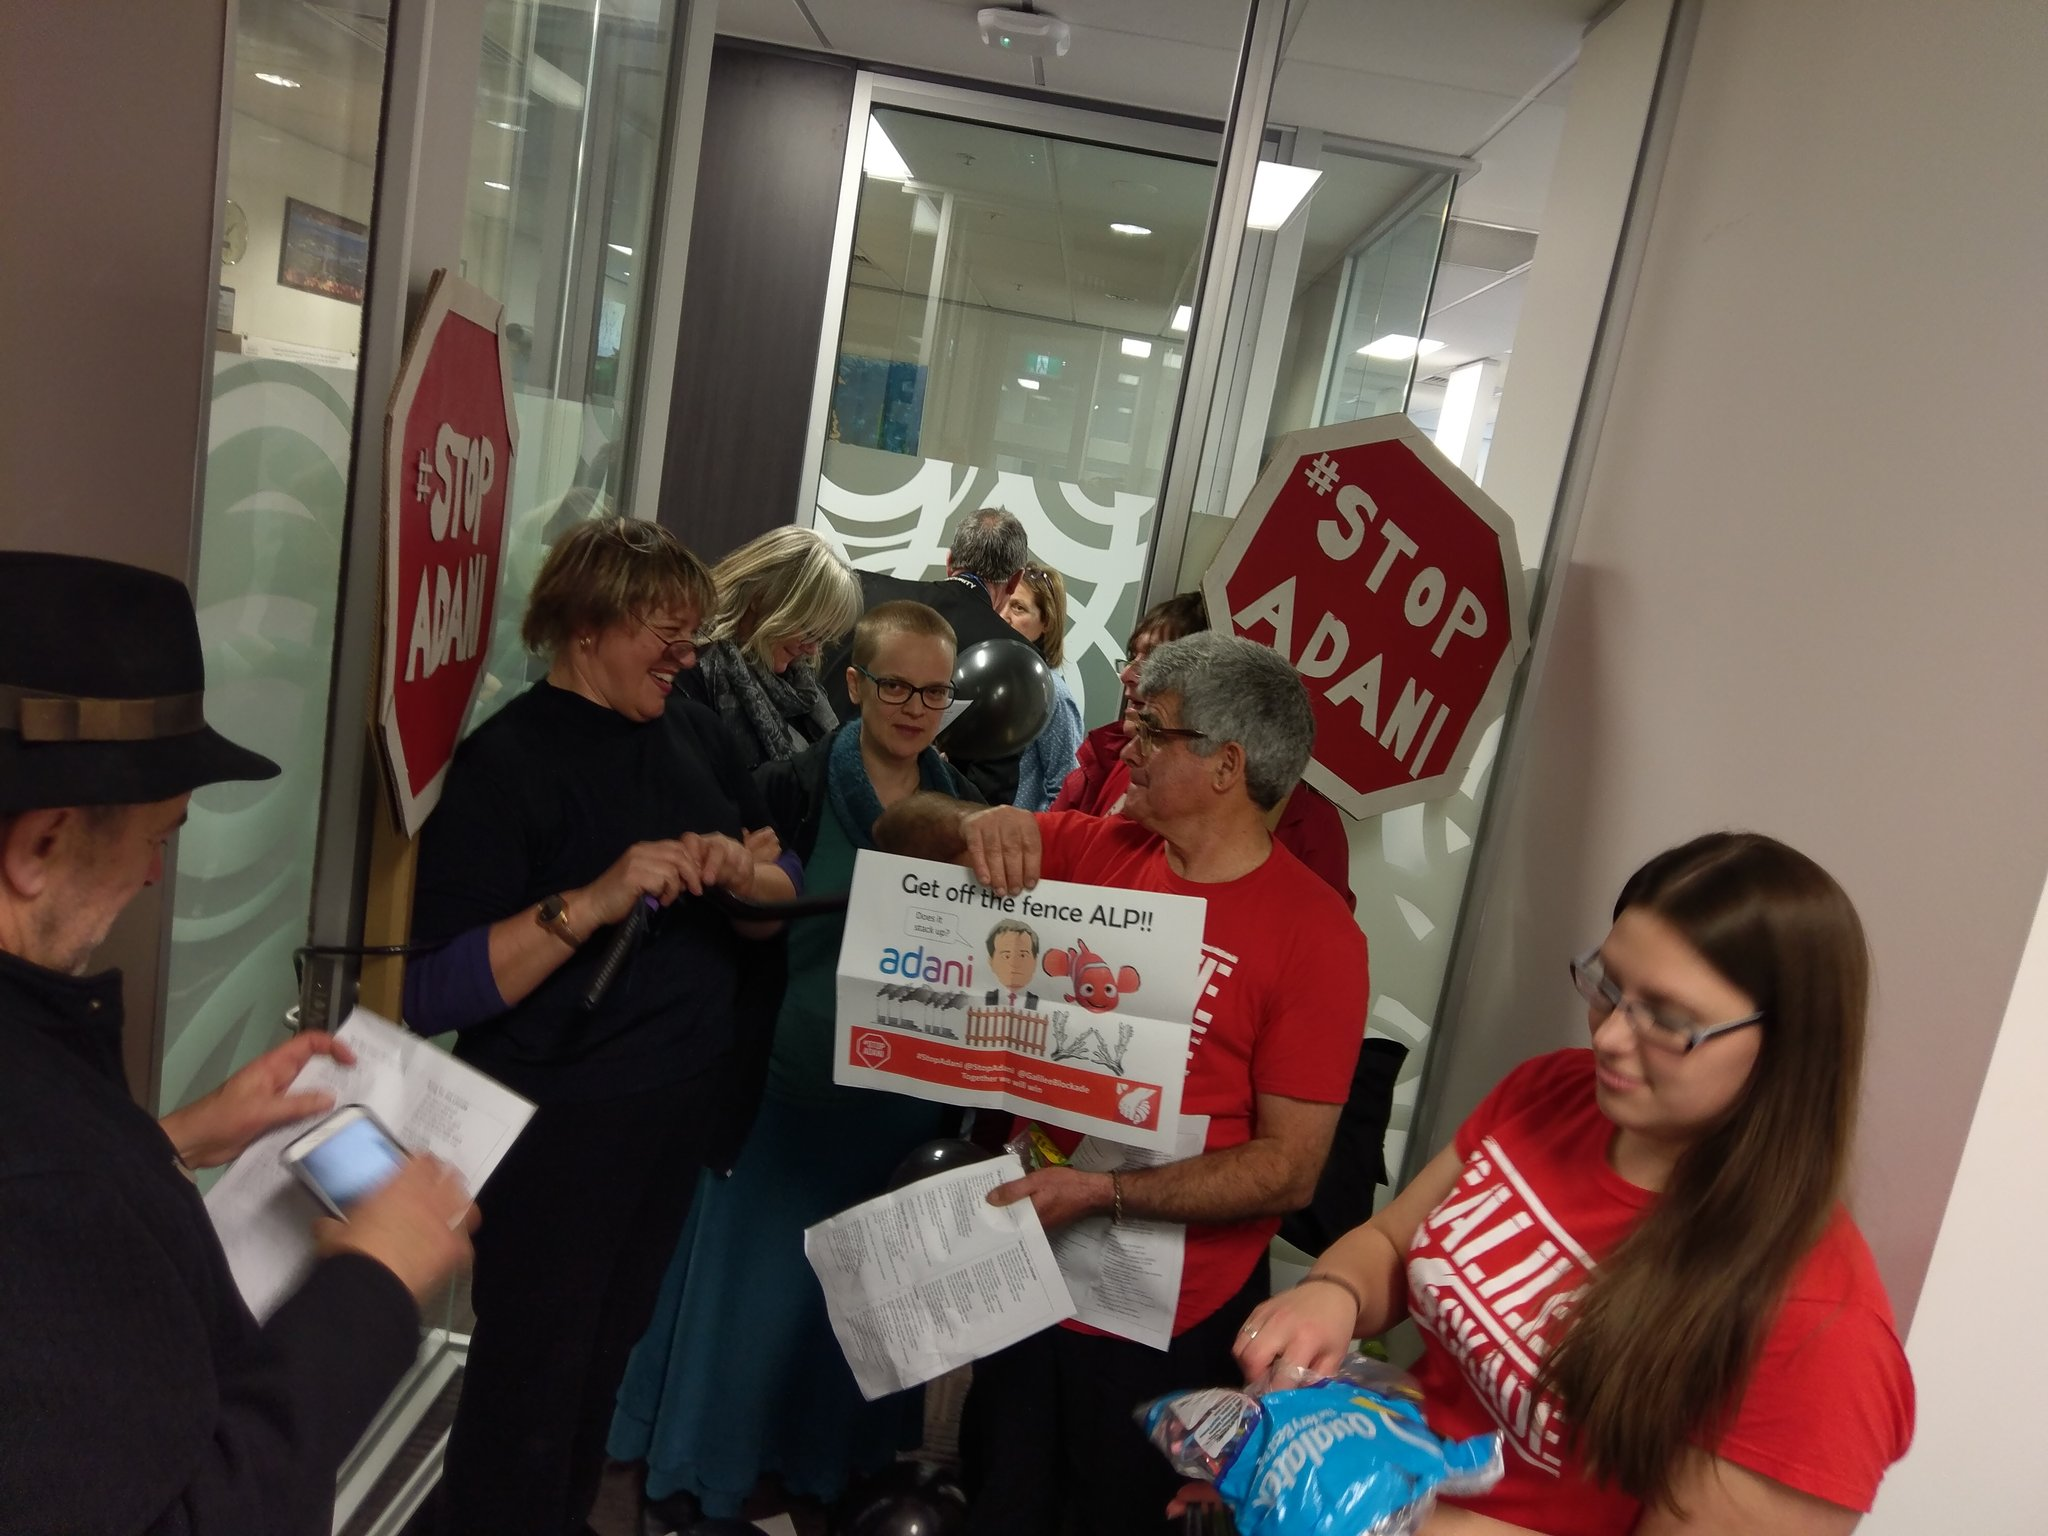 Occupation at Shorten's office. Time to pull the splinters out! #StopAdani https://t.co/jqywHLTrnZ